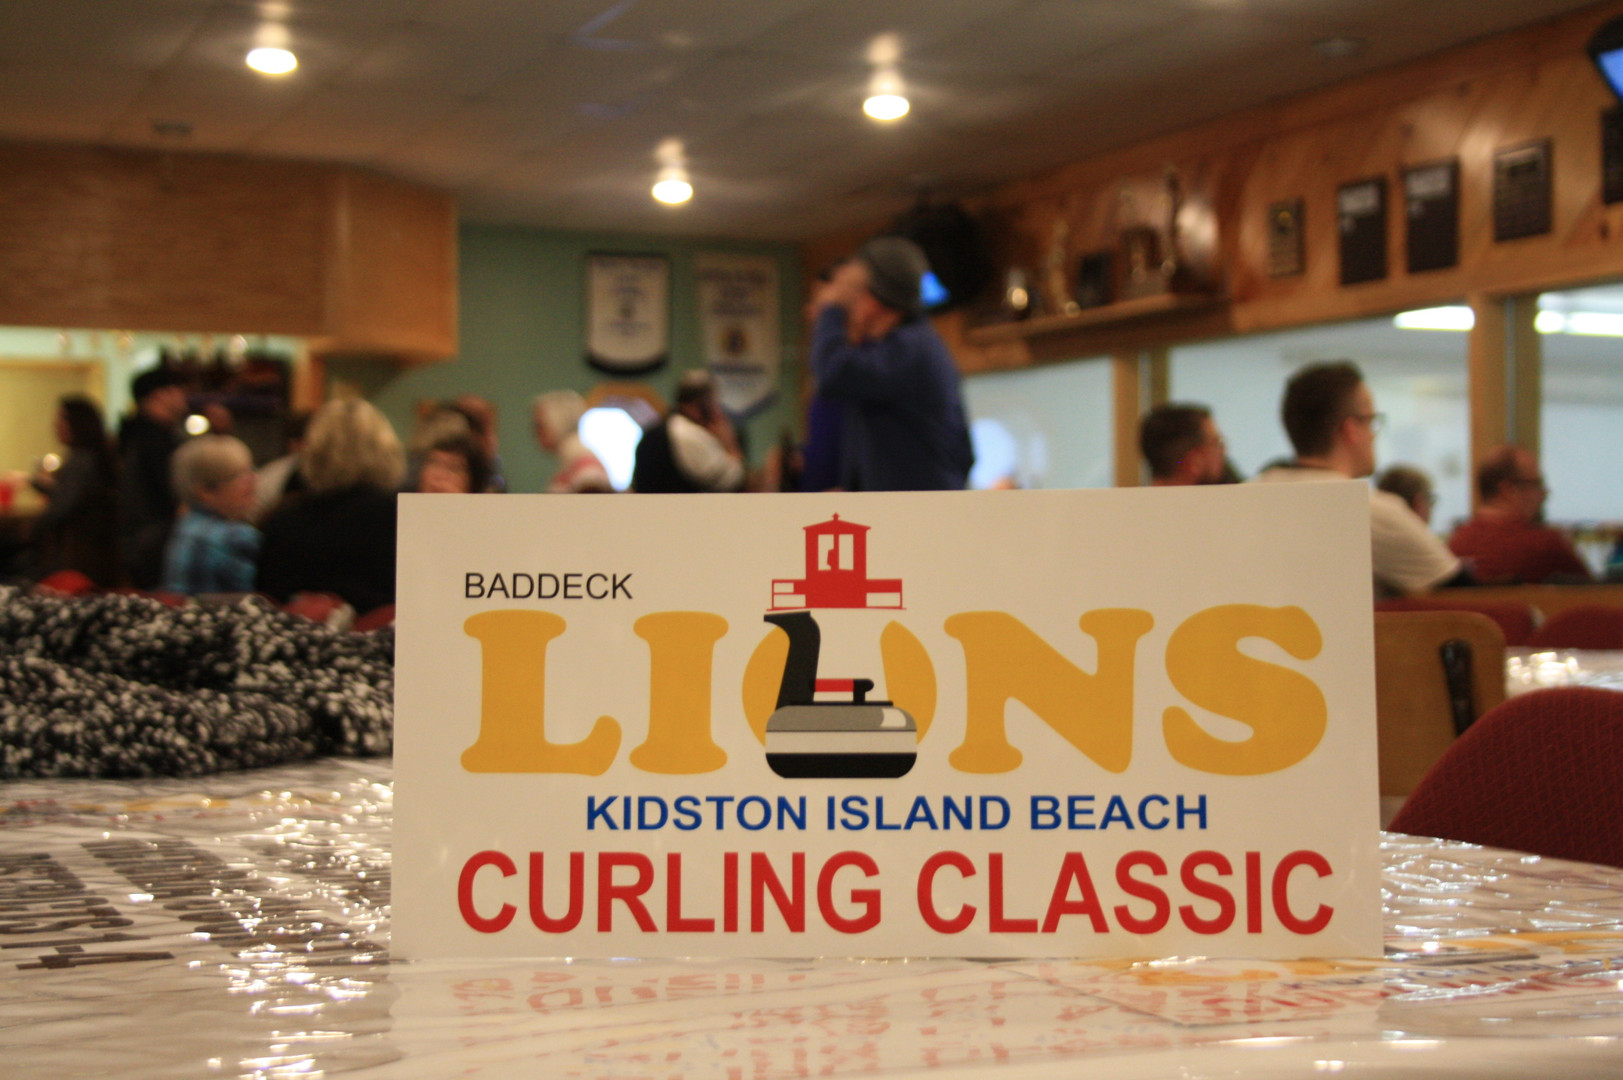 Great day for a curling classic!